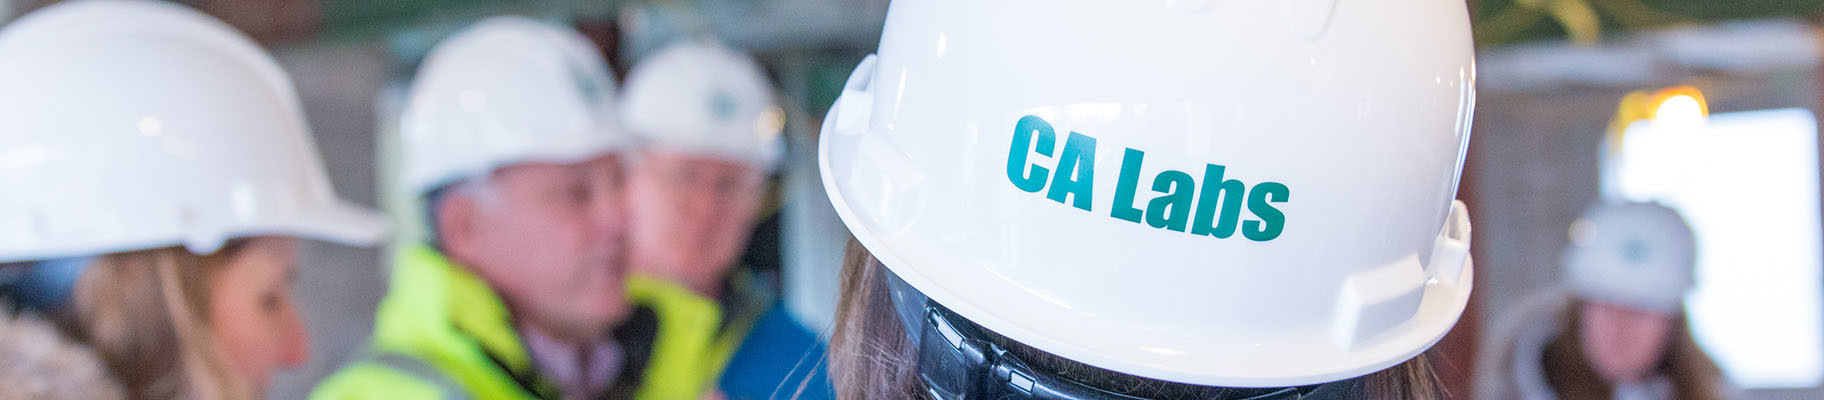 CA Labs Poised for Completion by September 1